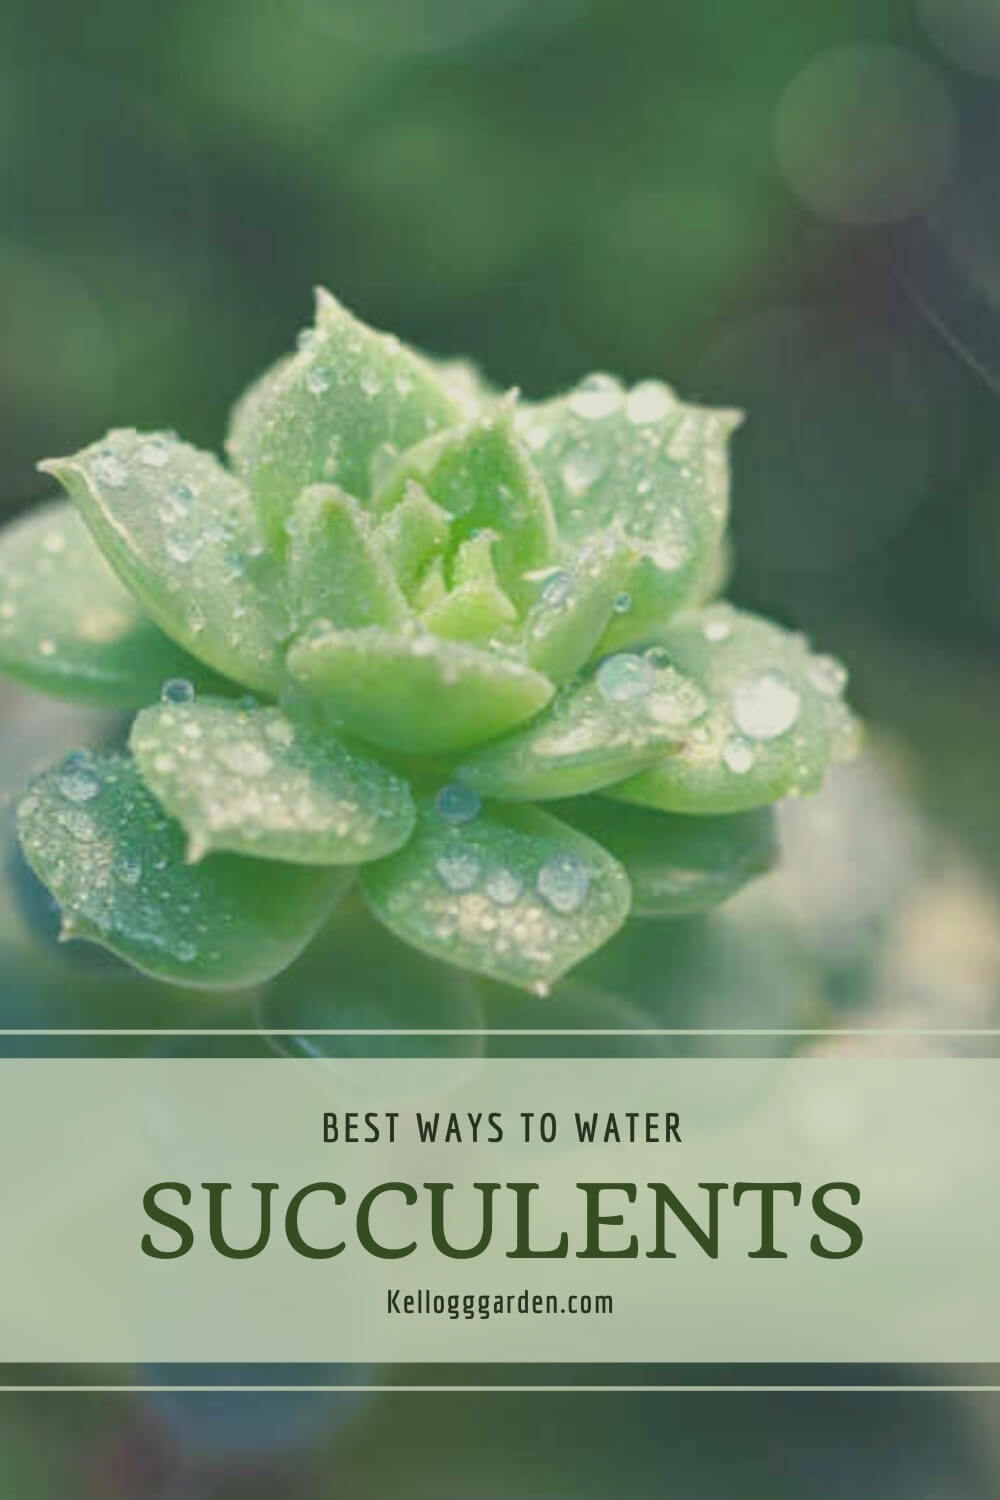 A green succulent with water droplets